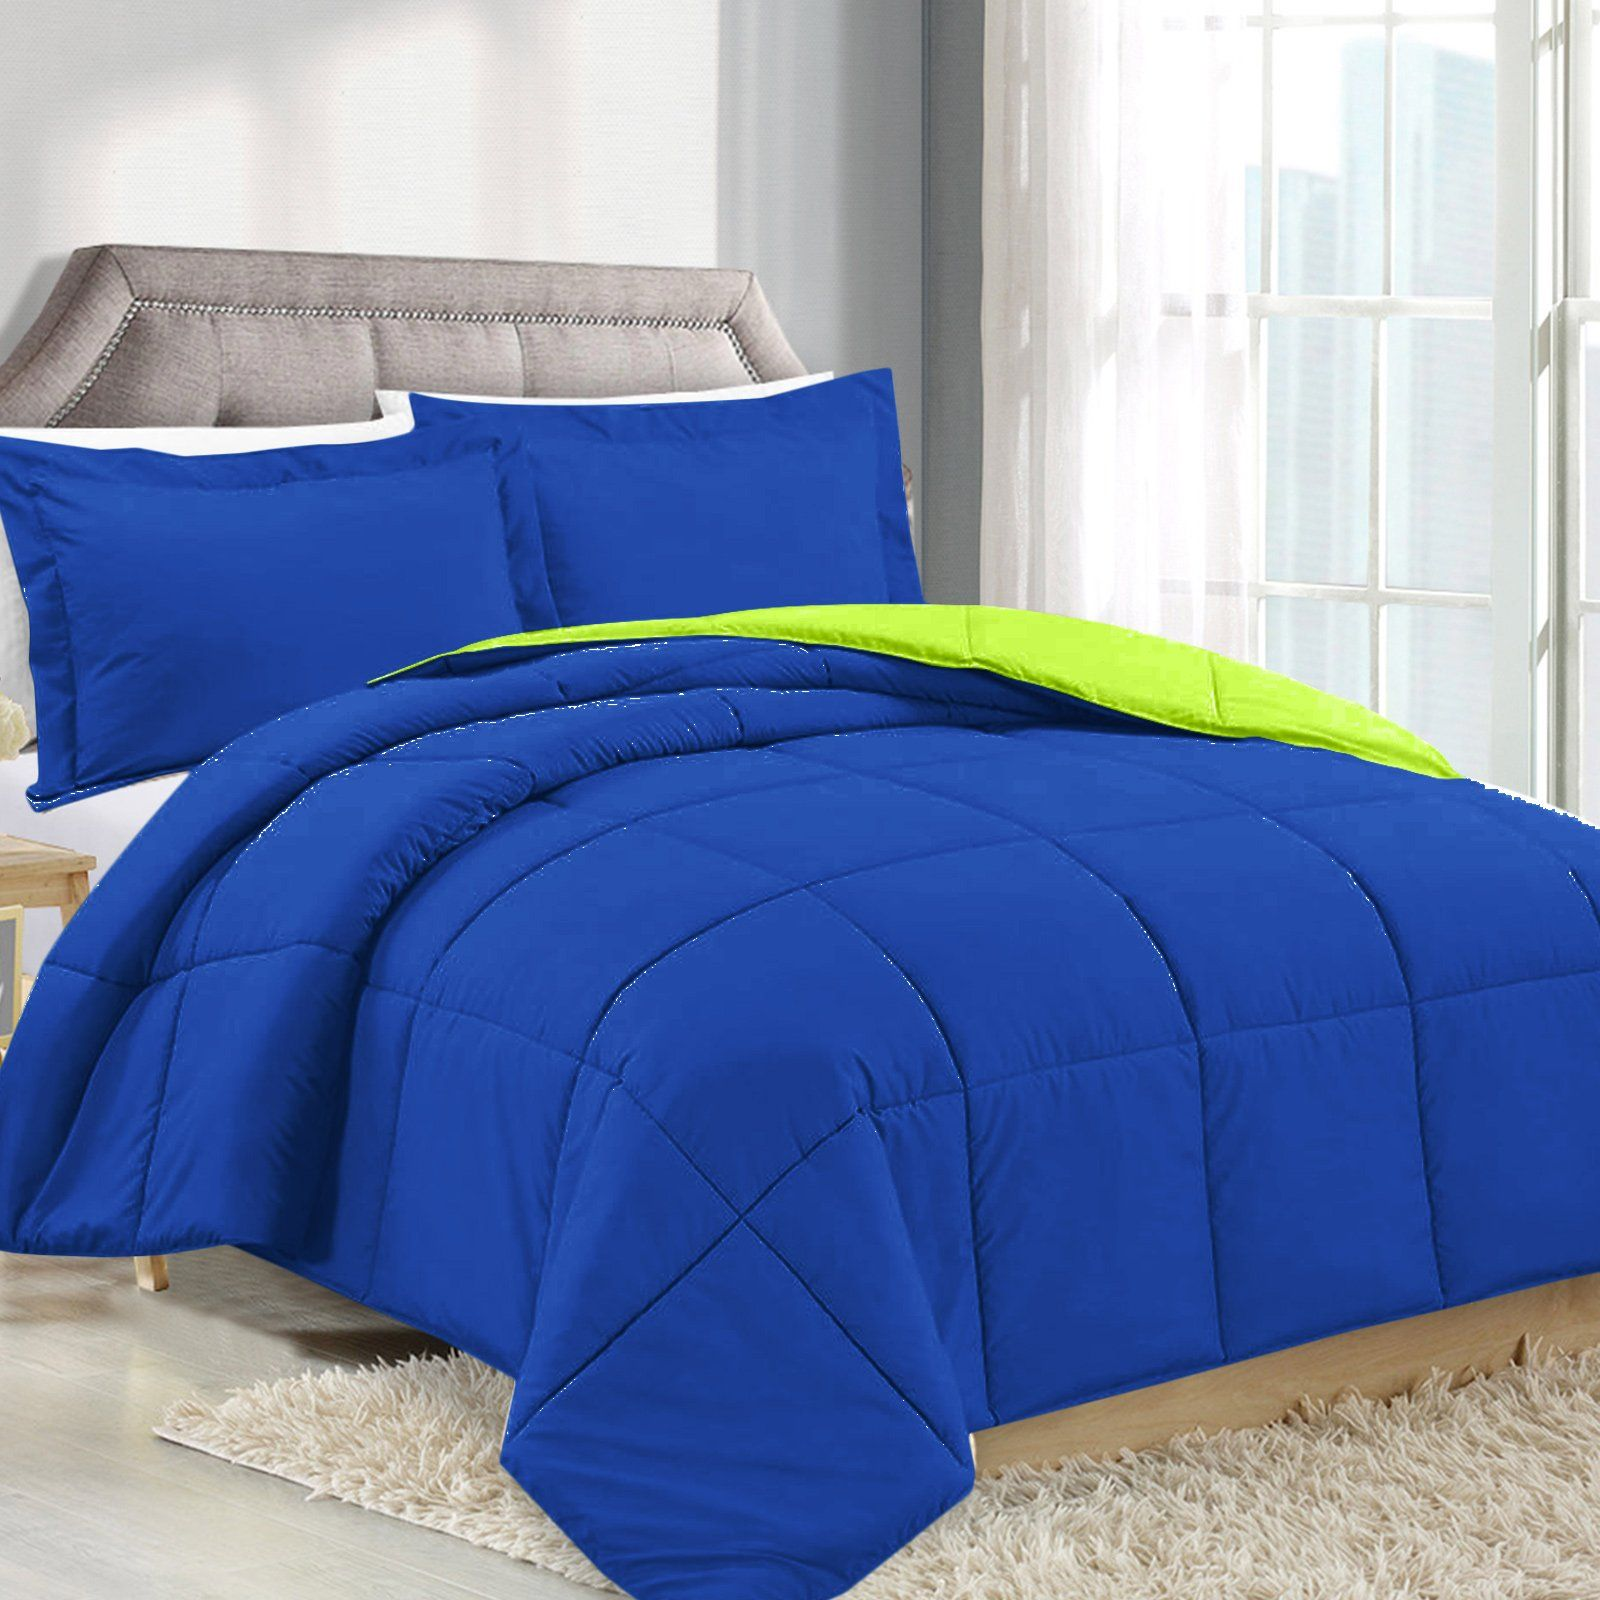 Twin Comforter Reversible Duvet Insert  Royal Bluelime Green